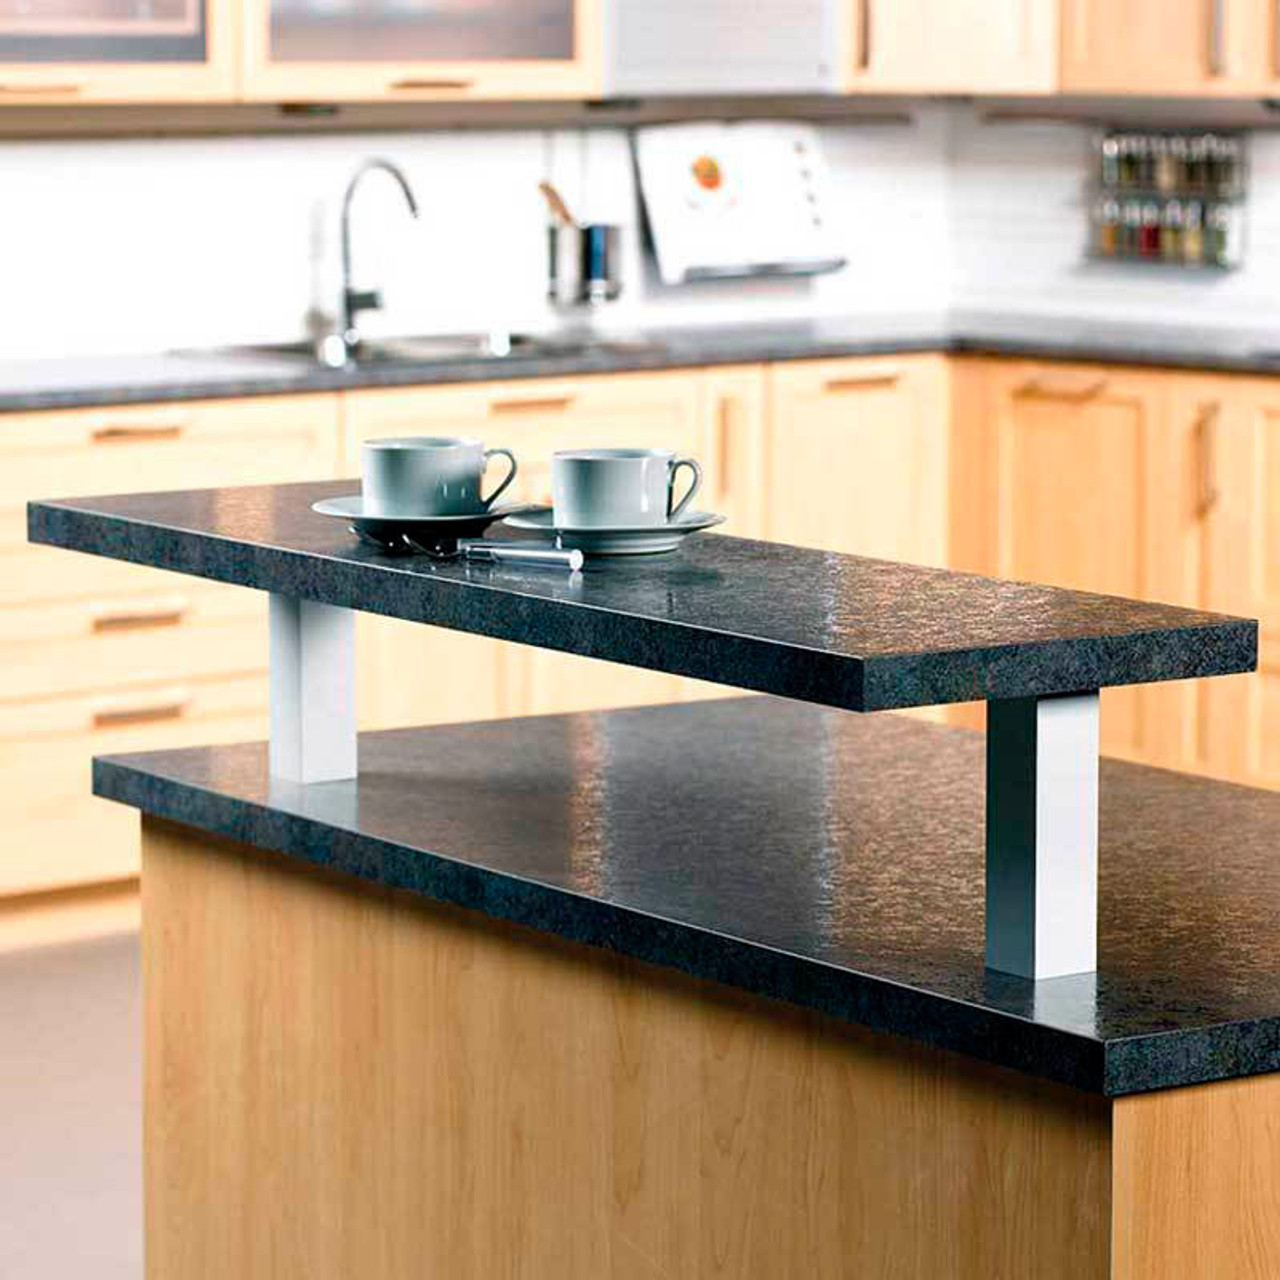 Will My Kitchen Countertop Support Lbs